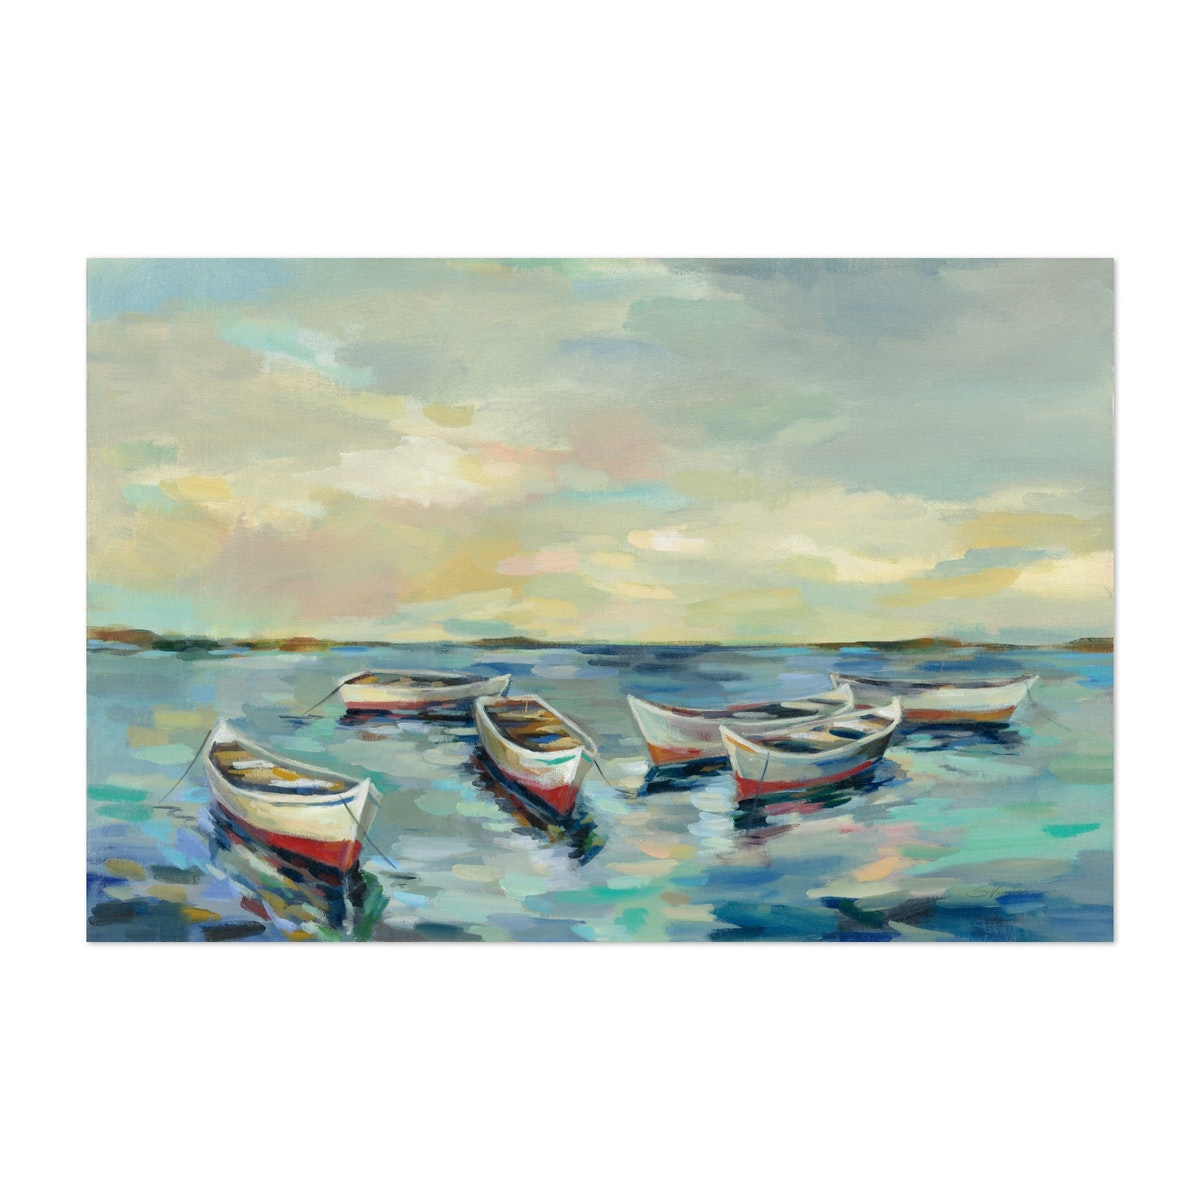 Coastal View of Boats